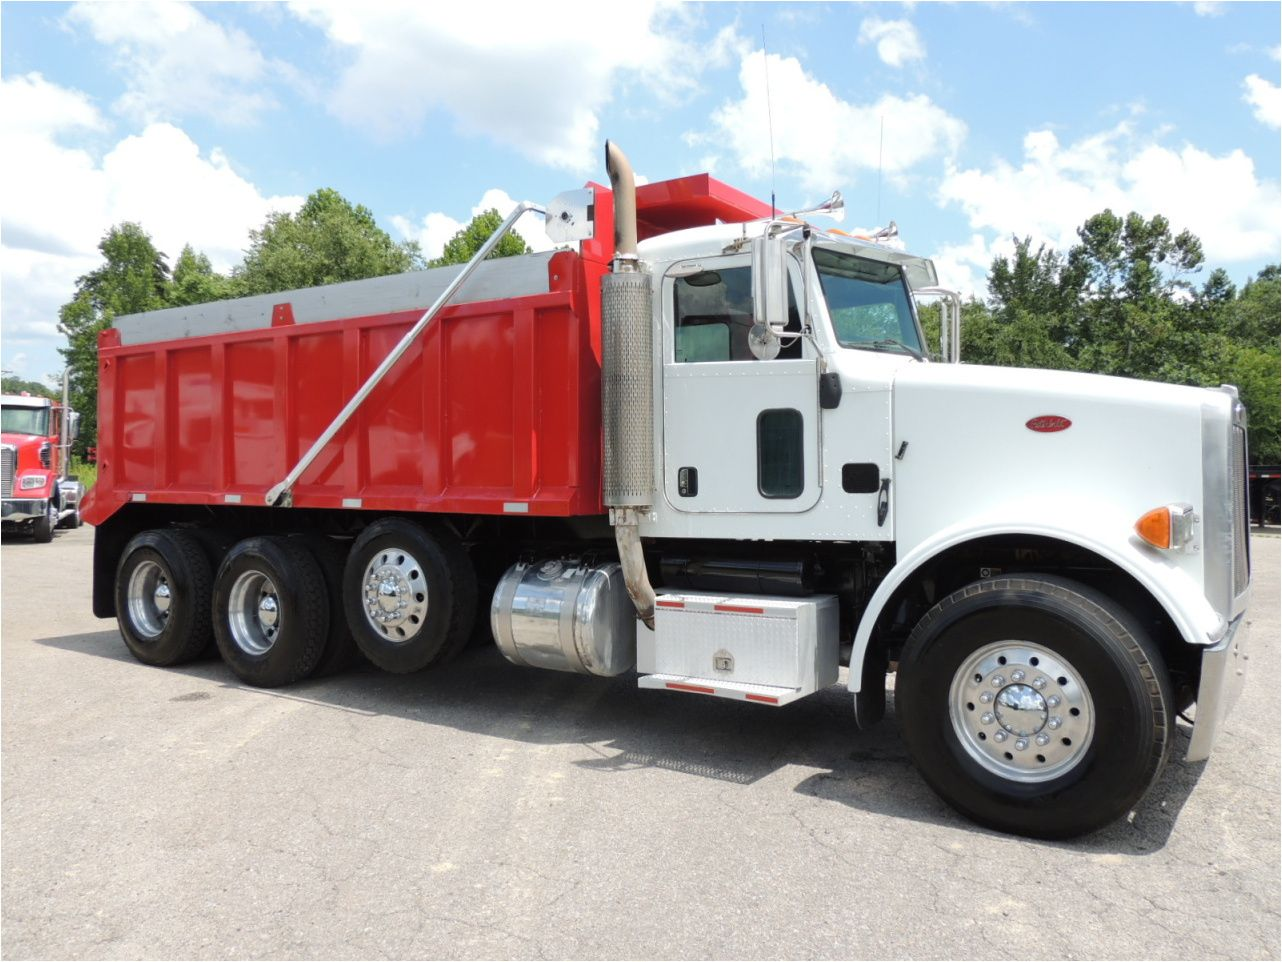 2008 Peterbilt 365 Dump Truck For Sale Dump Trucks For Sale Trucks For Sale Peterbilt